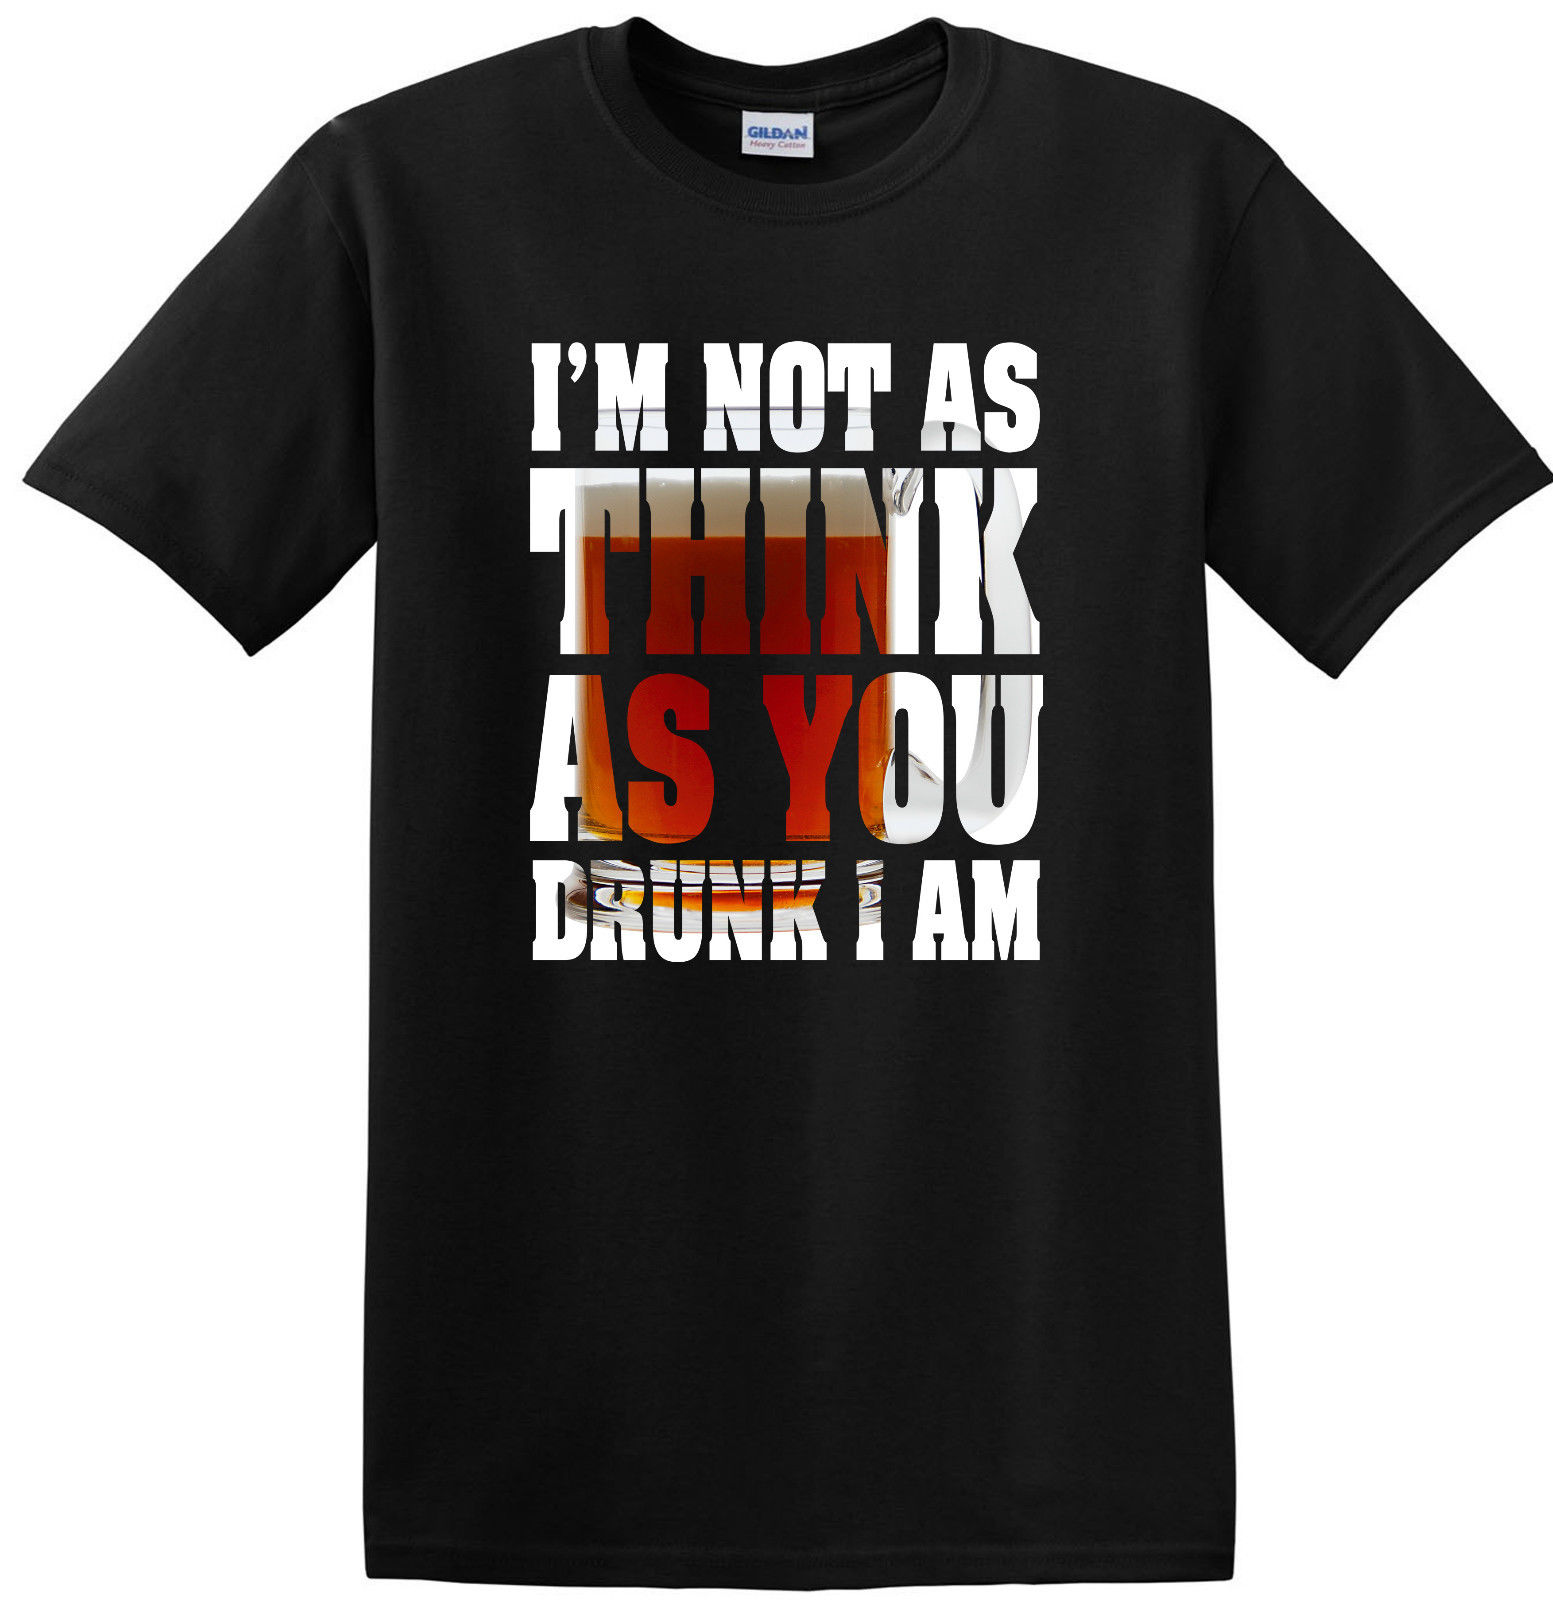 IM NOT AS THINK AS YOU DRUNK I AM CREW NECK SHORT SLEEVE BLACK T SHIRT Summer Short Sleeves Cotton T-Shirt Top Tee